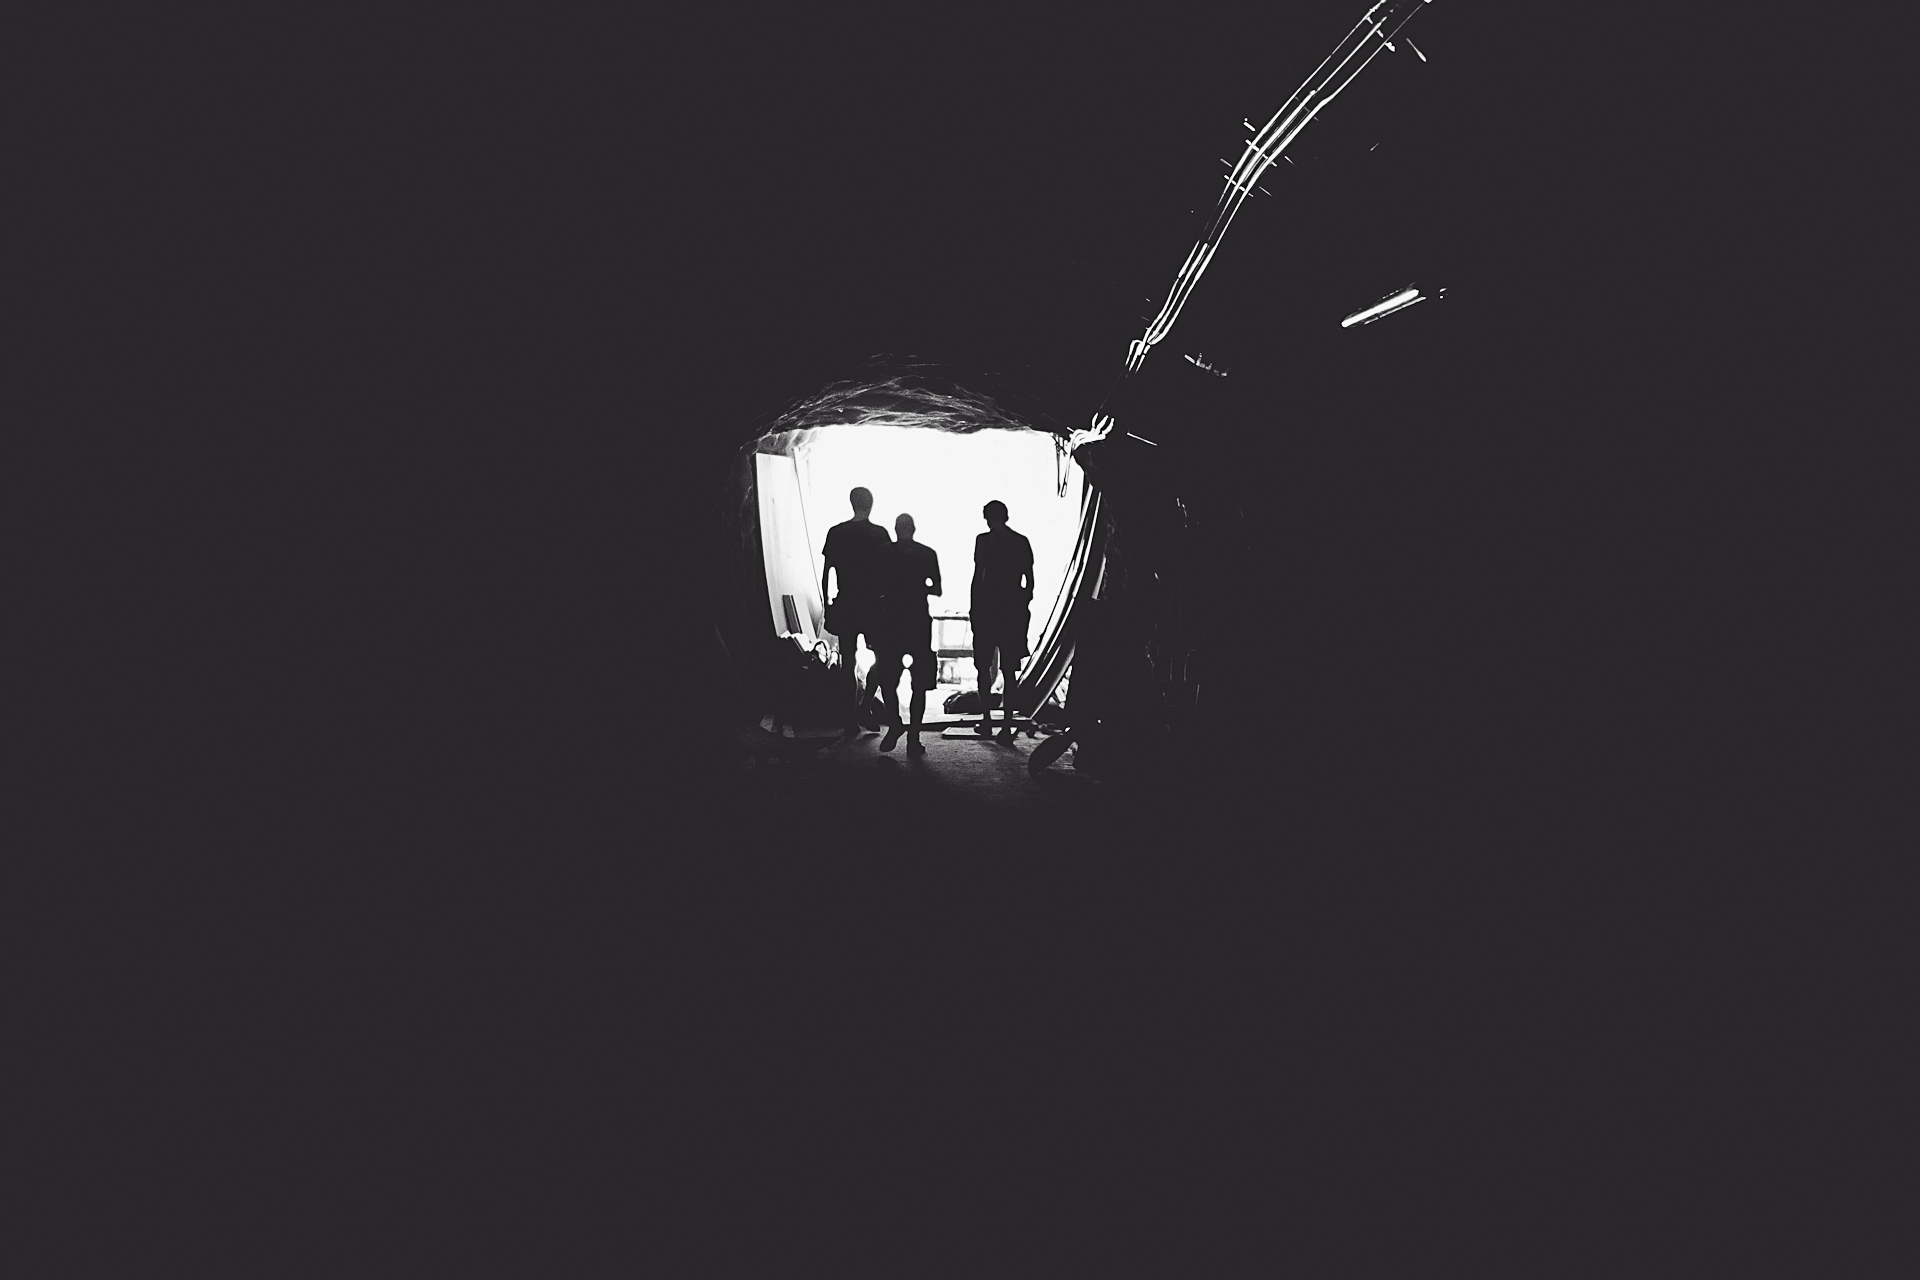 Tunnel showing light and three people at the end.